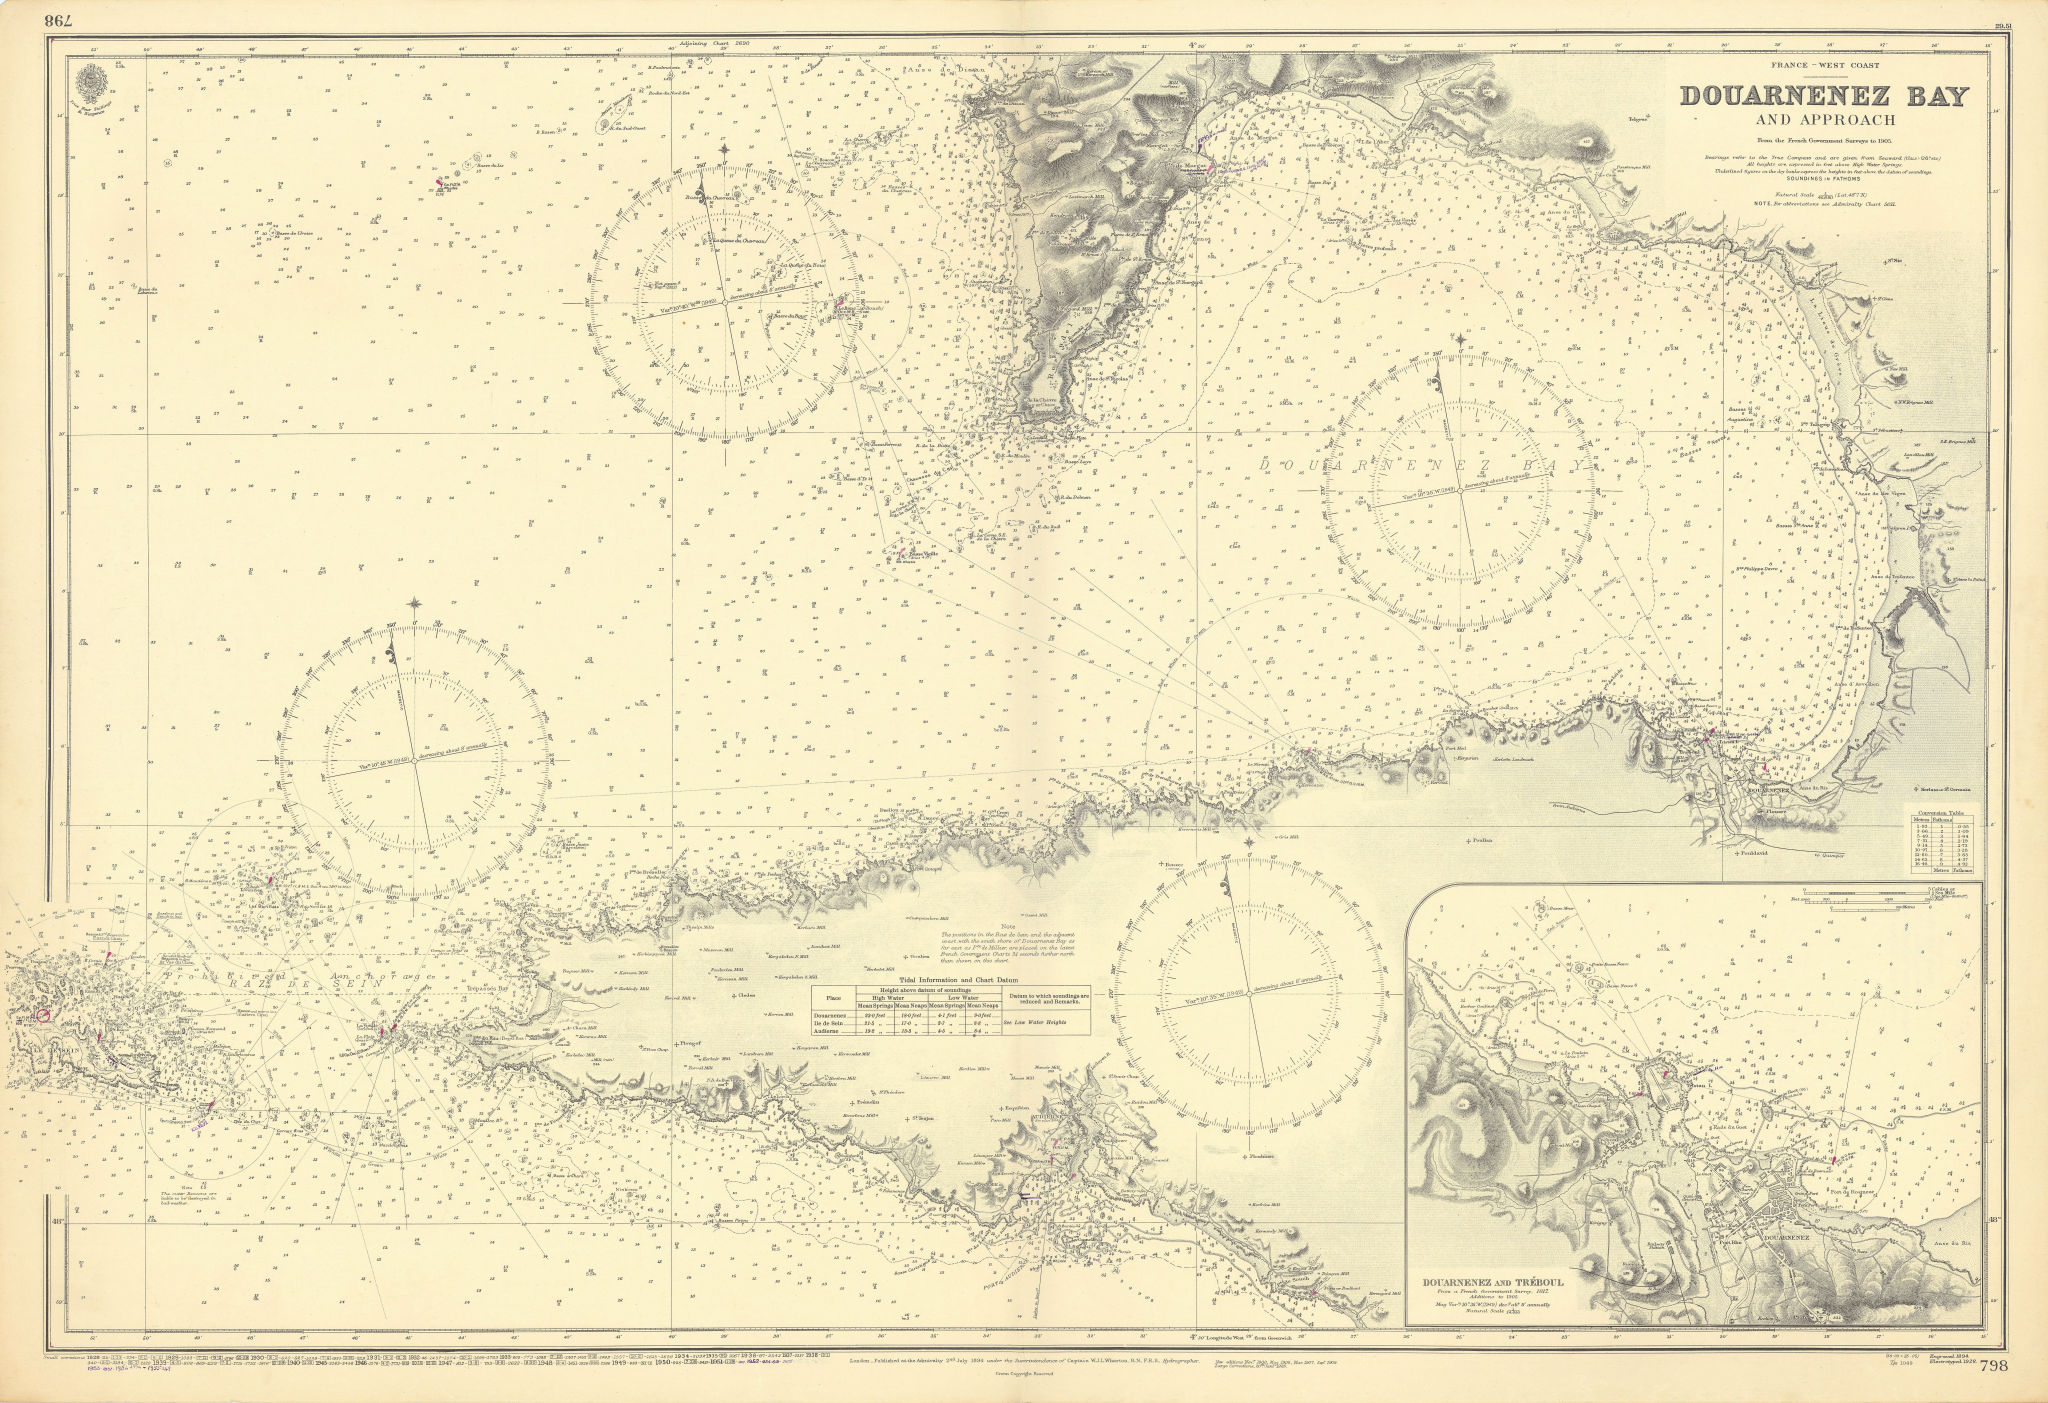 Douarnenez Bay & approach. Finistère France. ADMIRALTY sea chart 1894 (1955) map